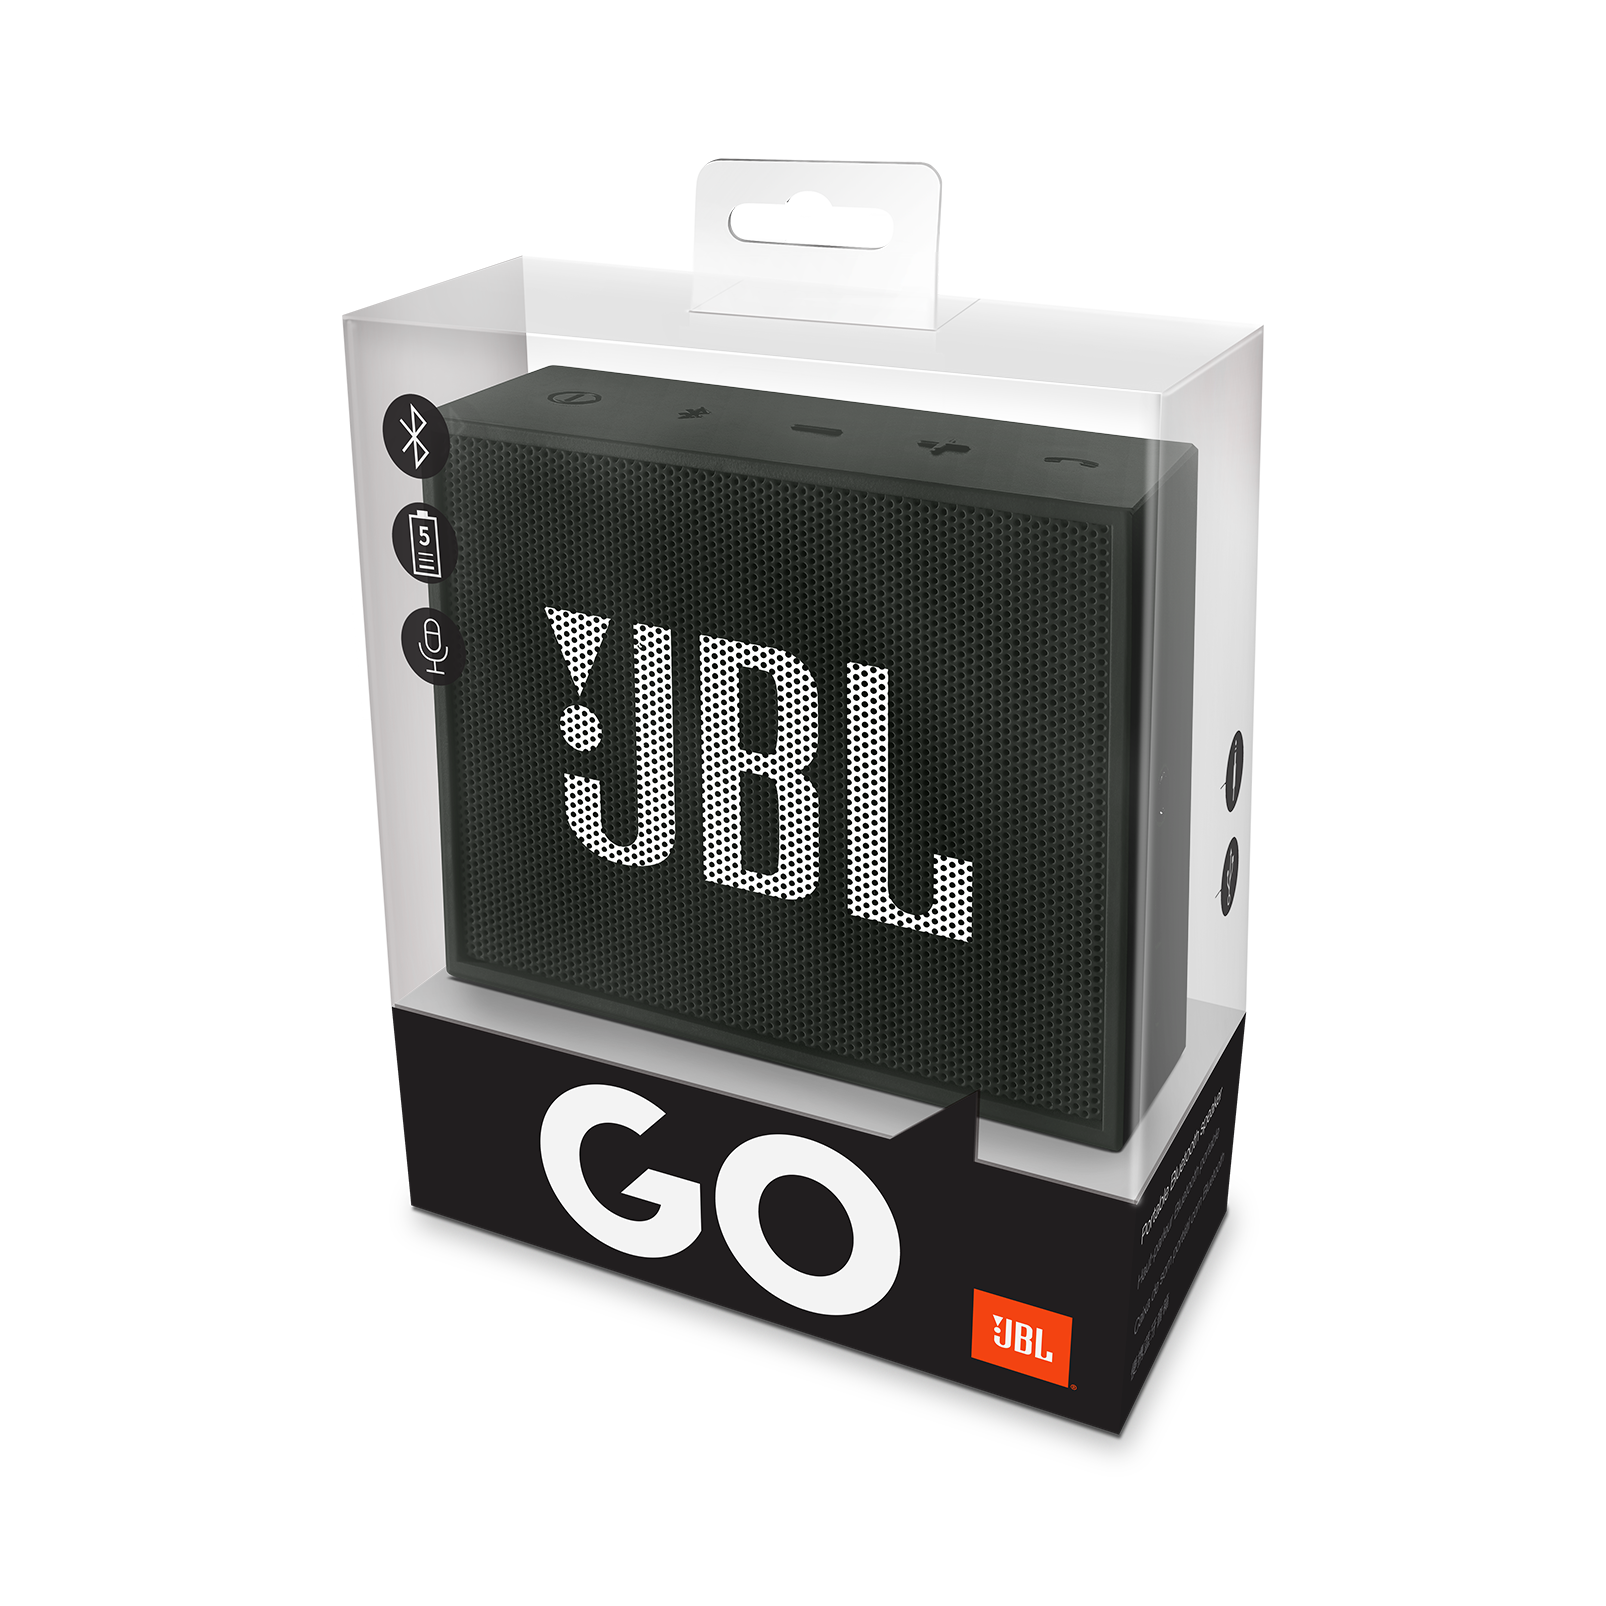 Jbl Go Portable Mini Bluetooth Speaker 2 Way Box Design Whats In The